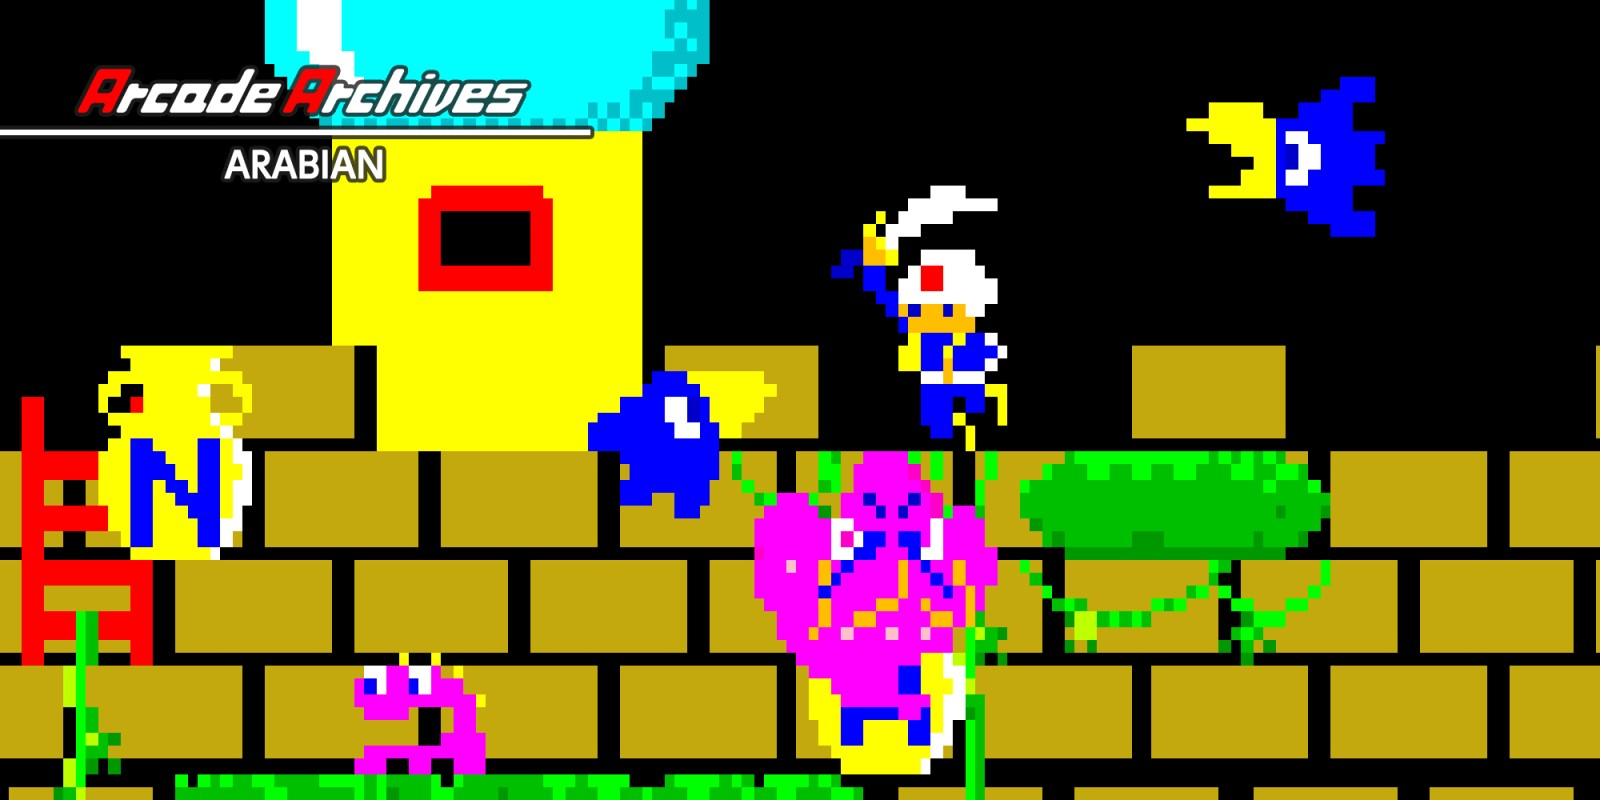 Arcade Archives ARABIAN